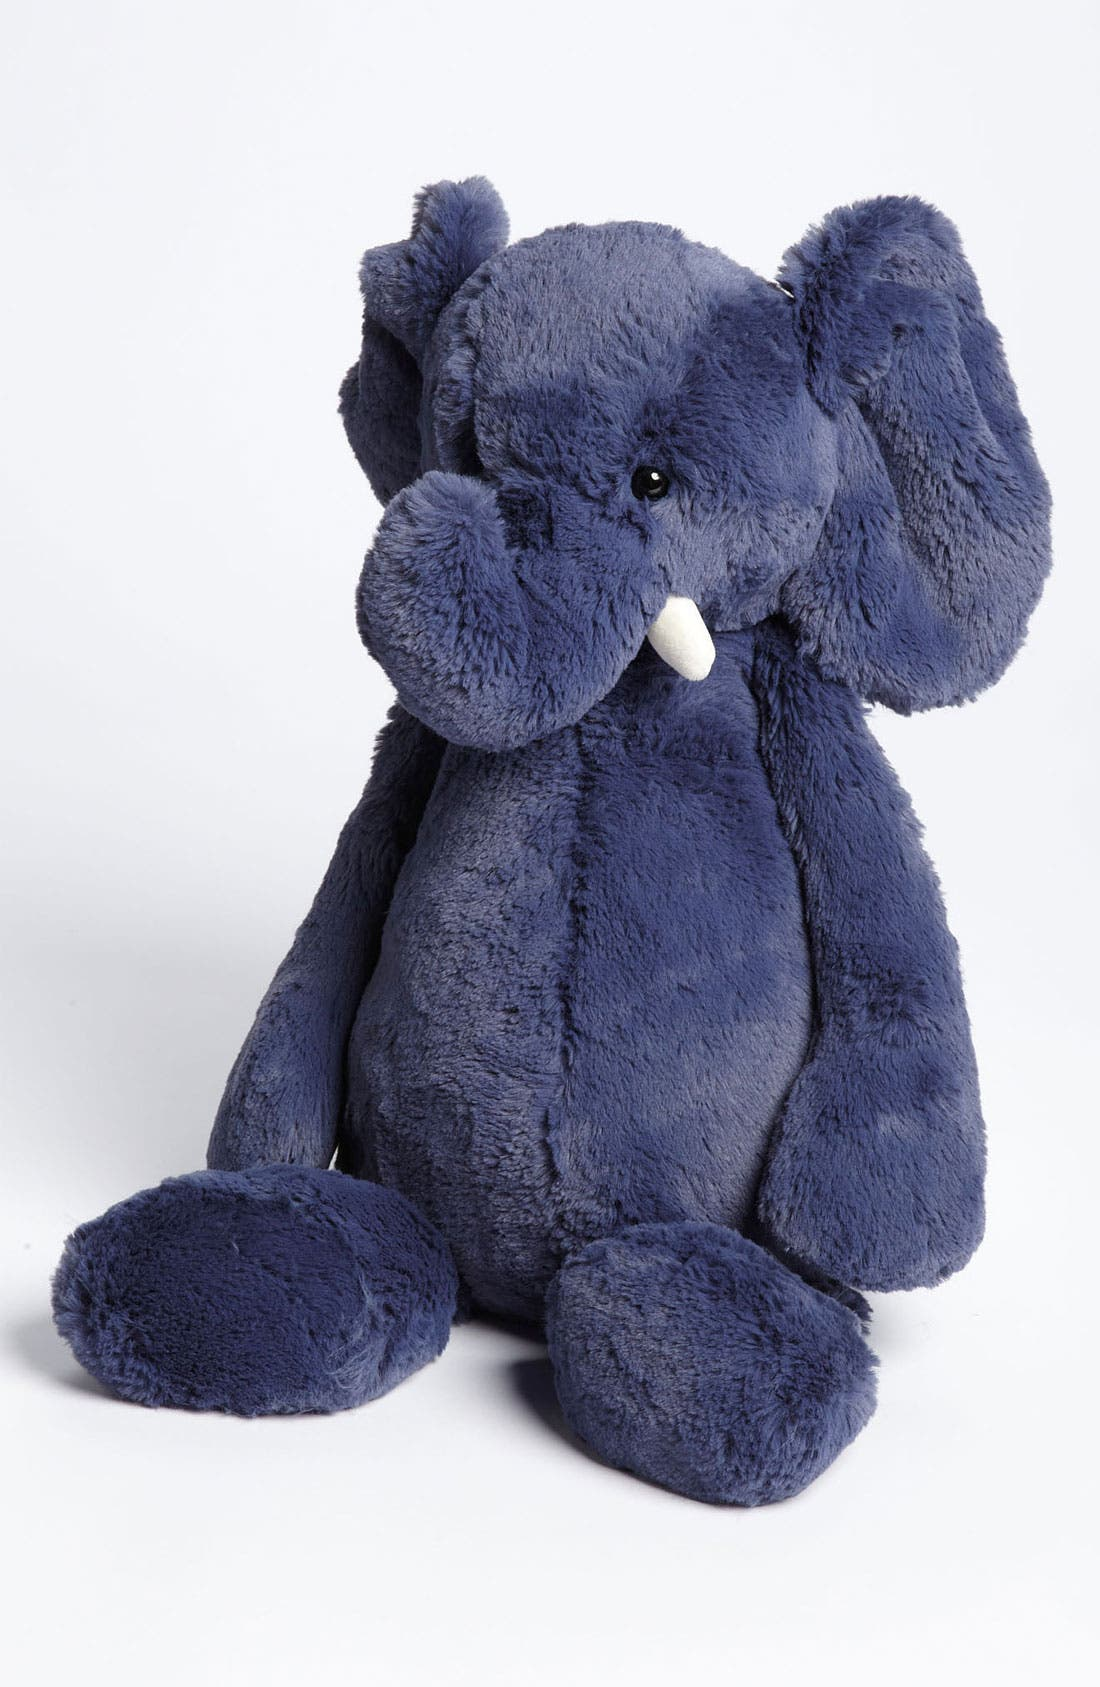 Alternate Image 1 Selected - Jellycat 'Large Bashful Elephant' Stuffed Animal